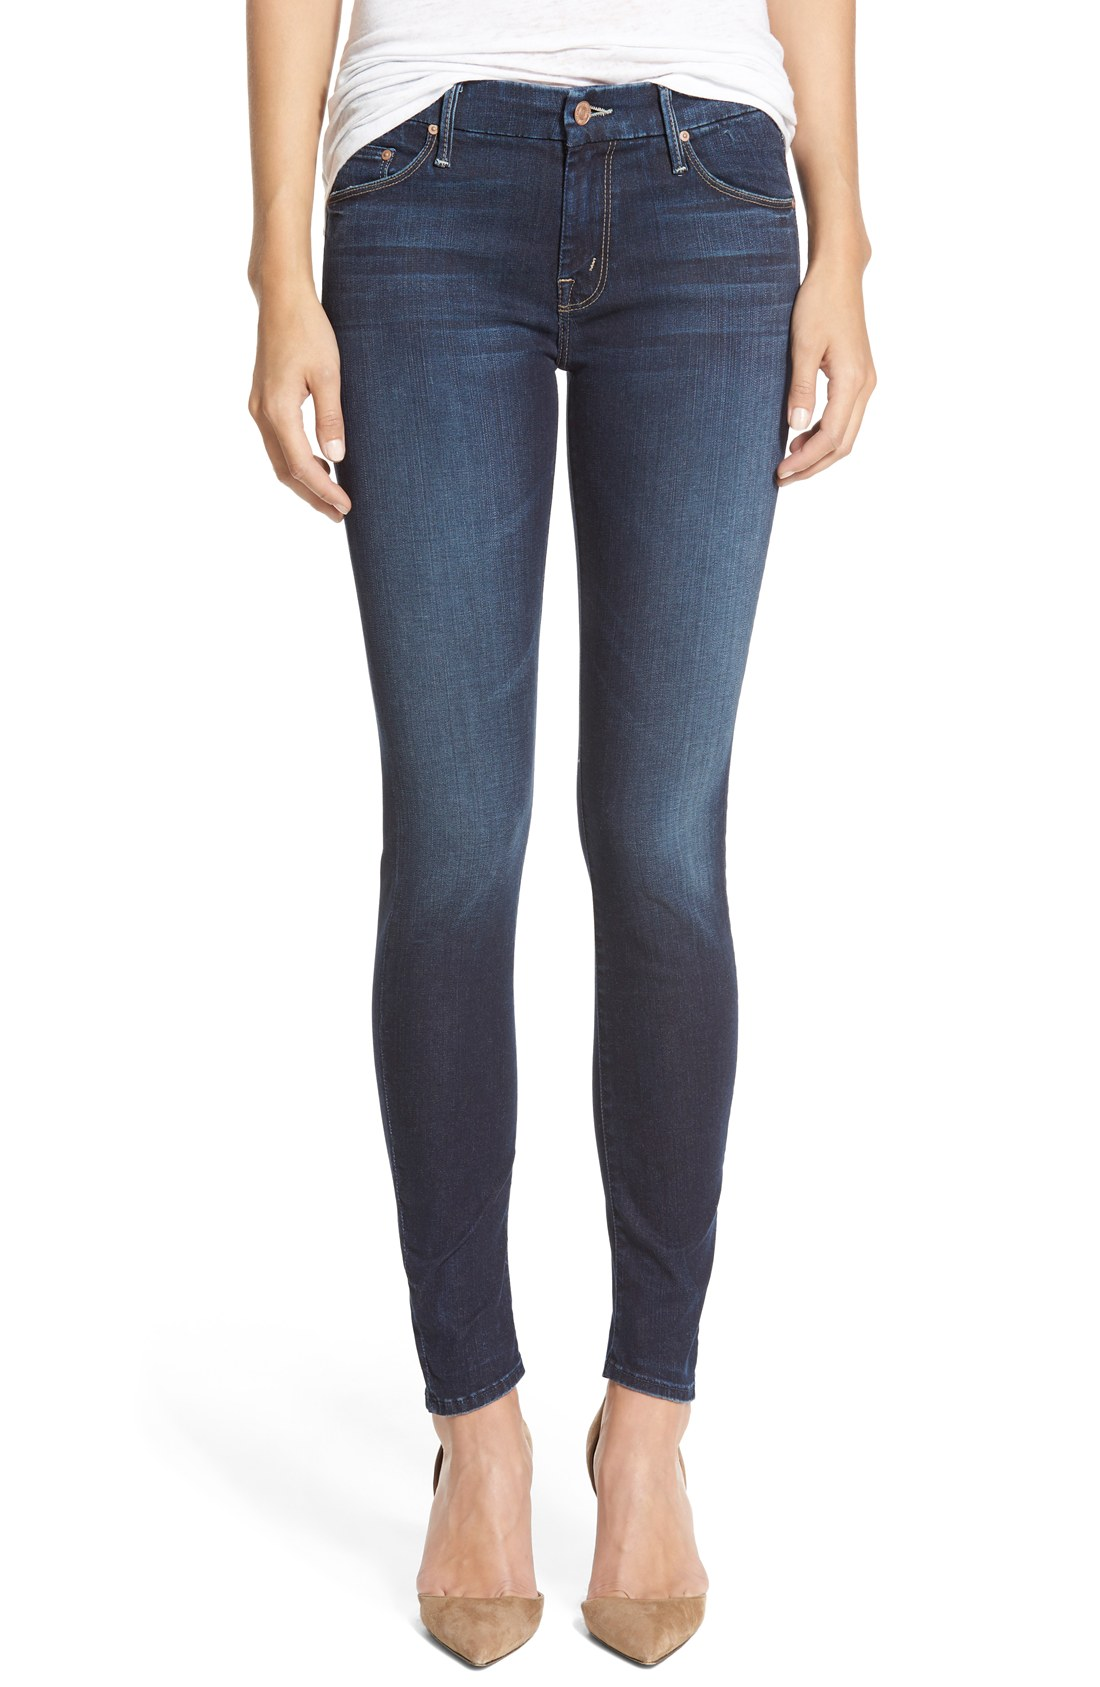 The looker skinny jeans mother